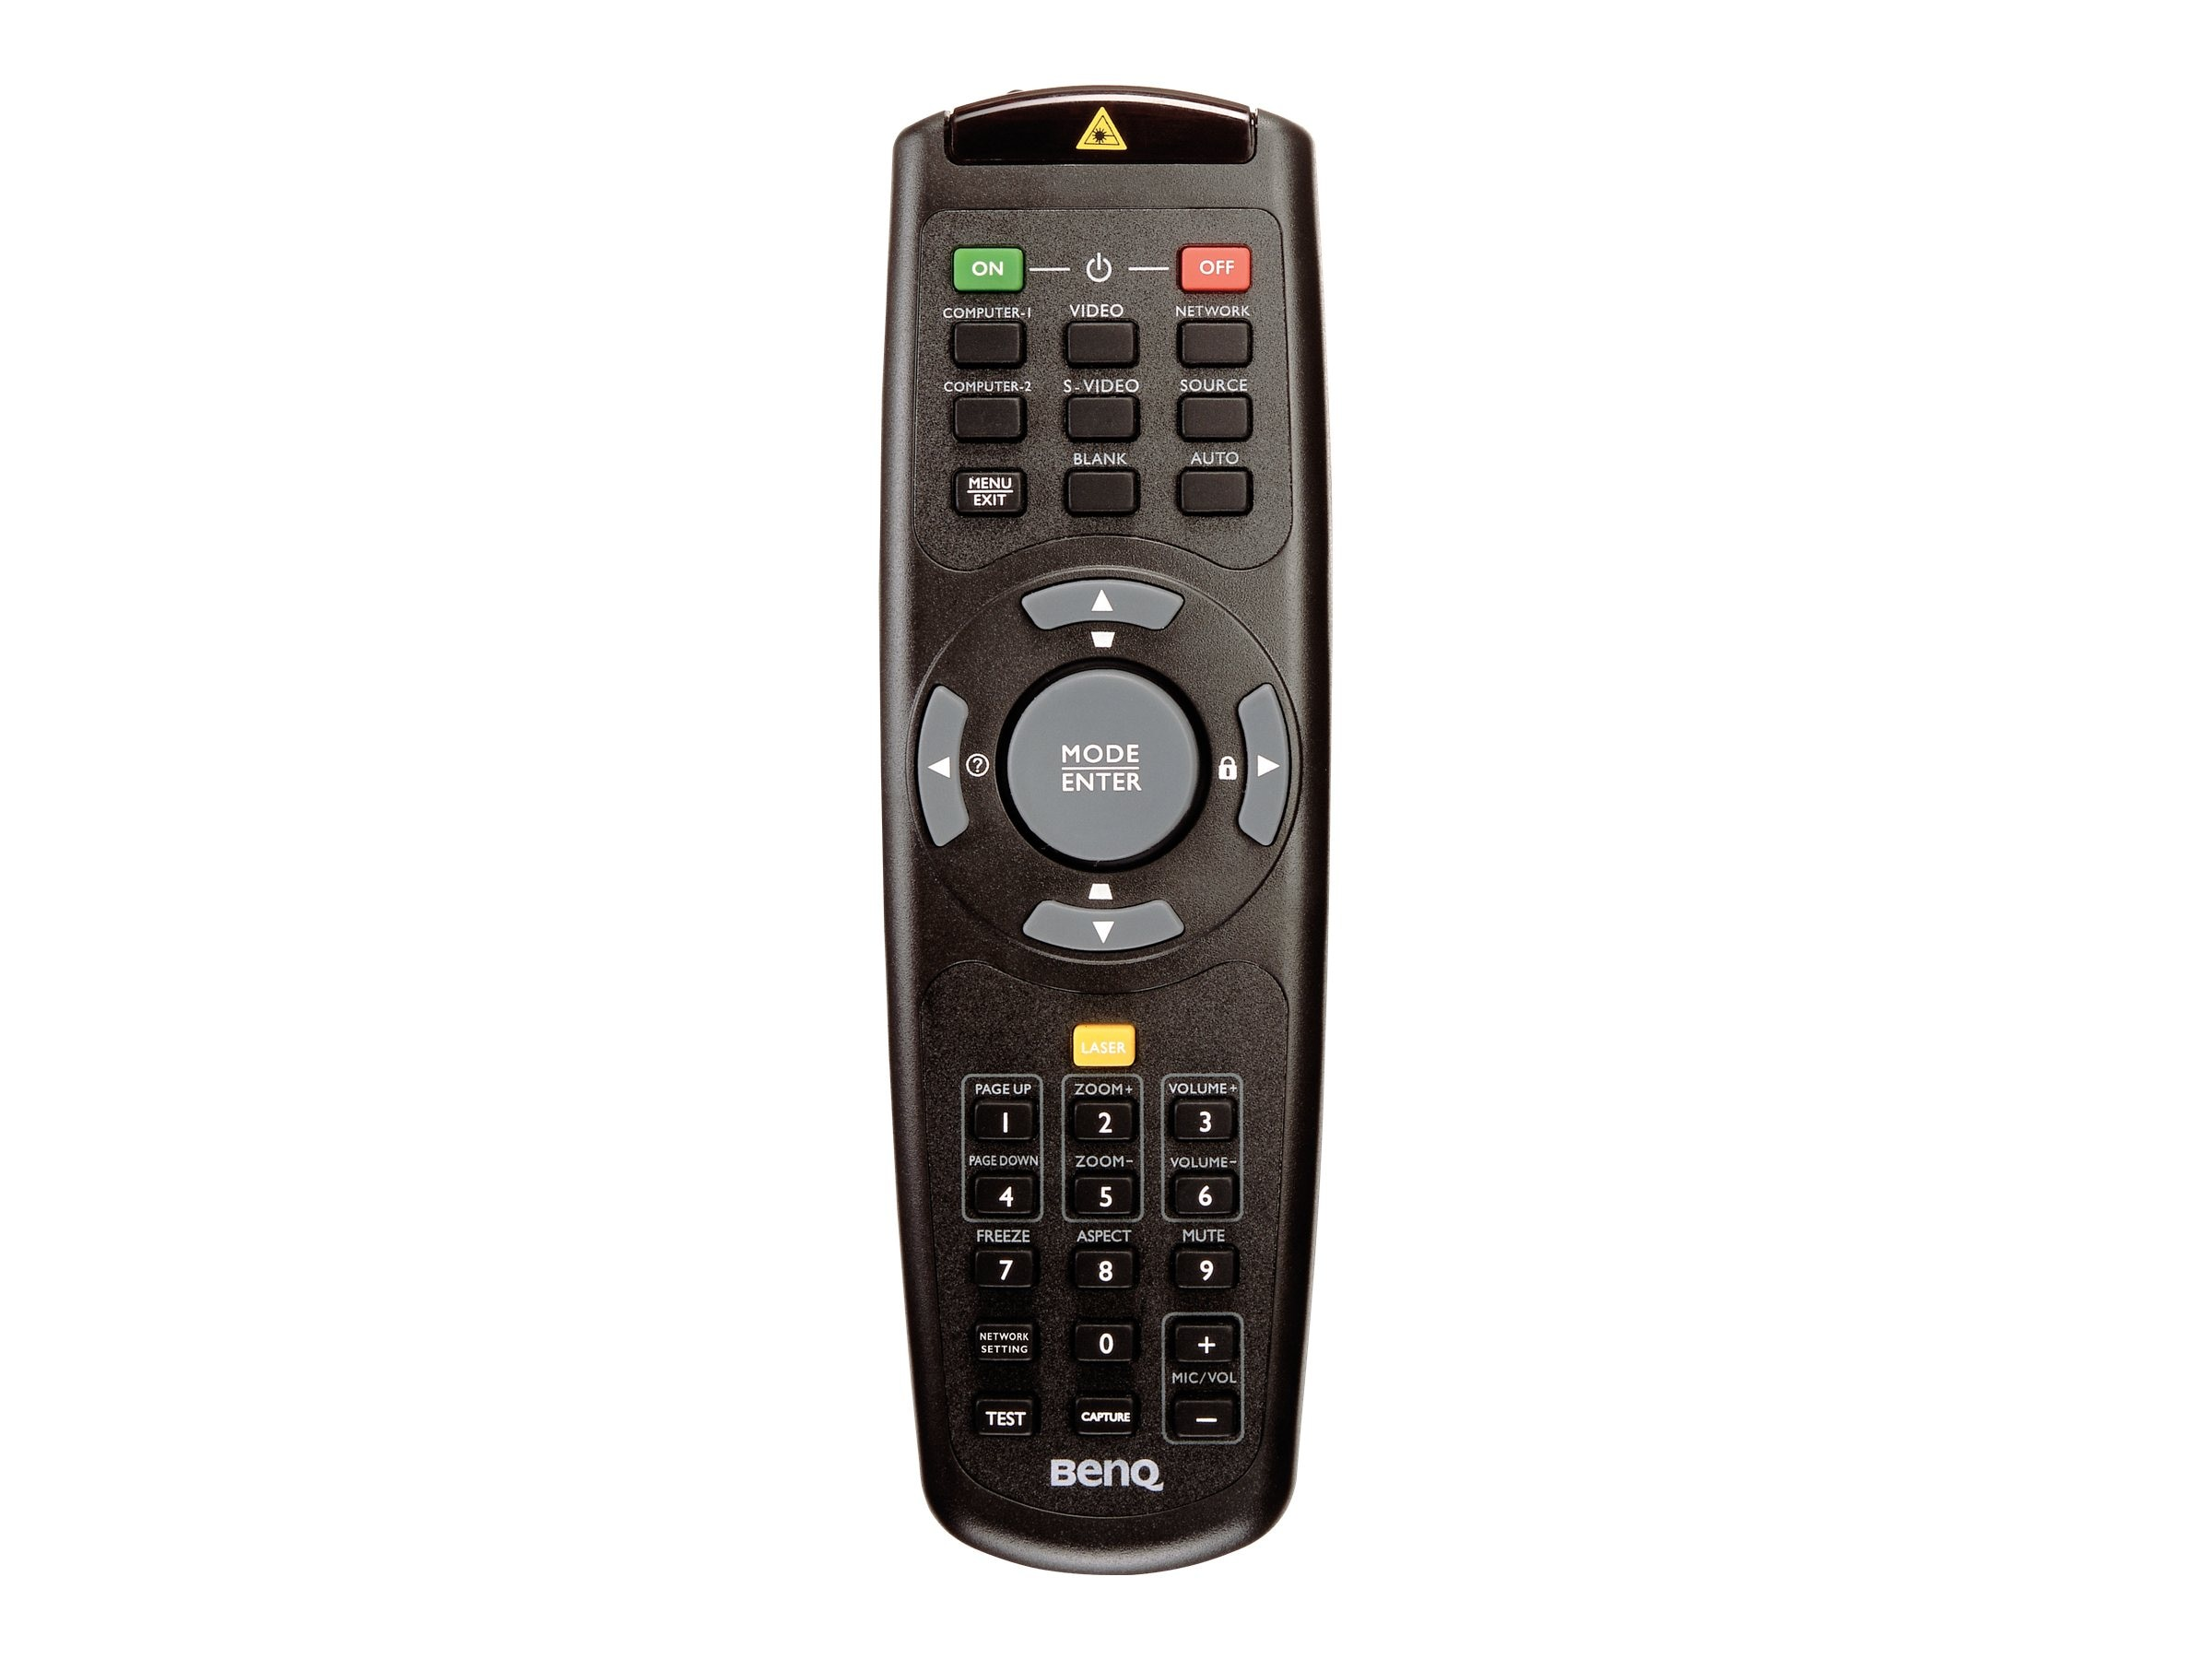 Benq Replacement Standard Remote Control for SH910